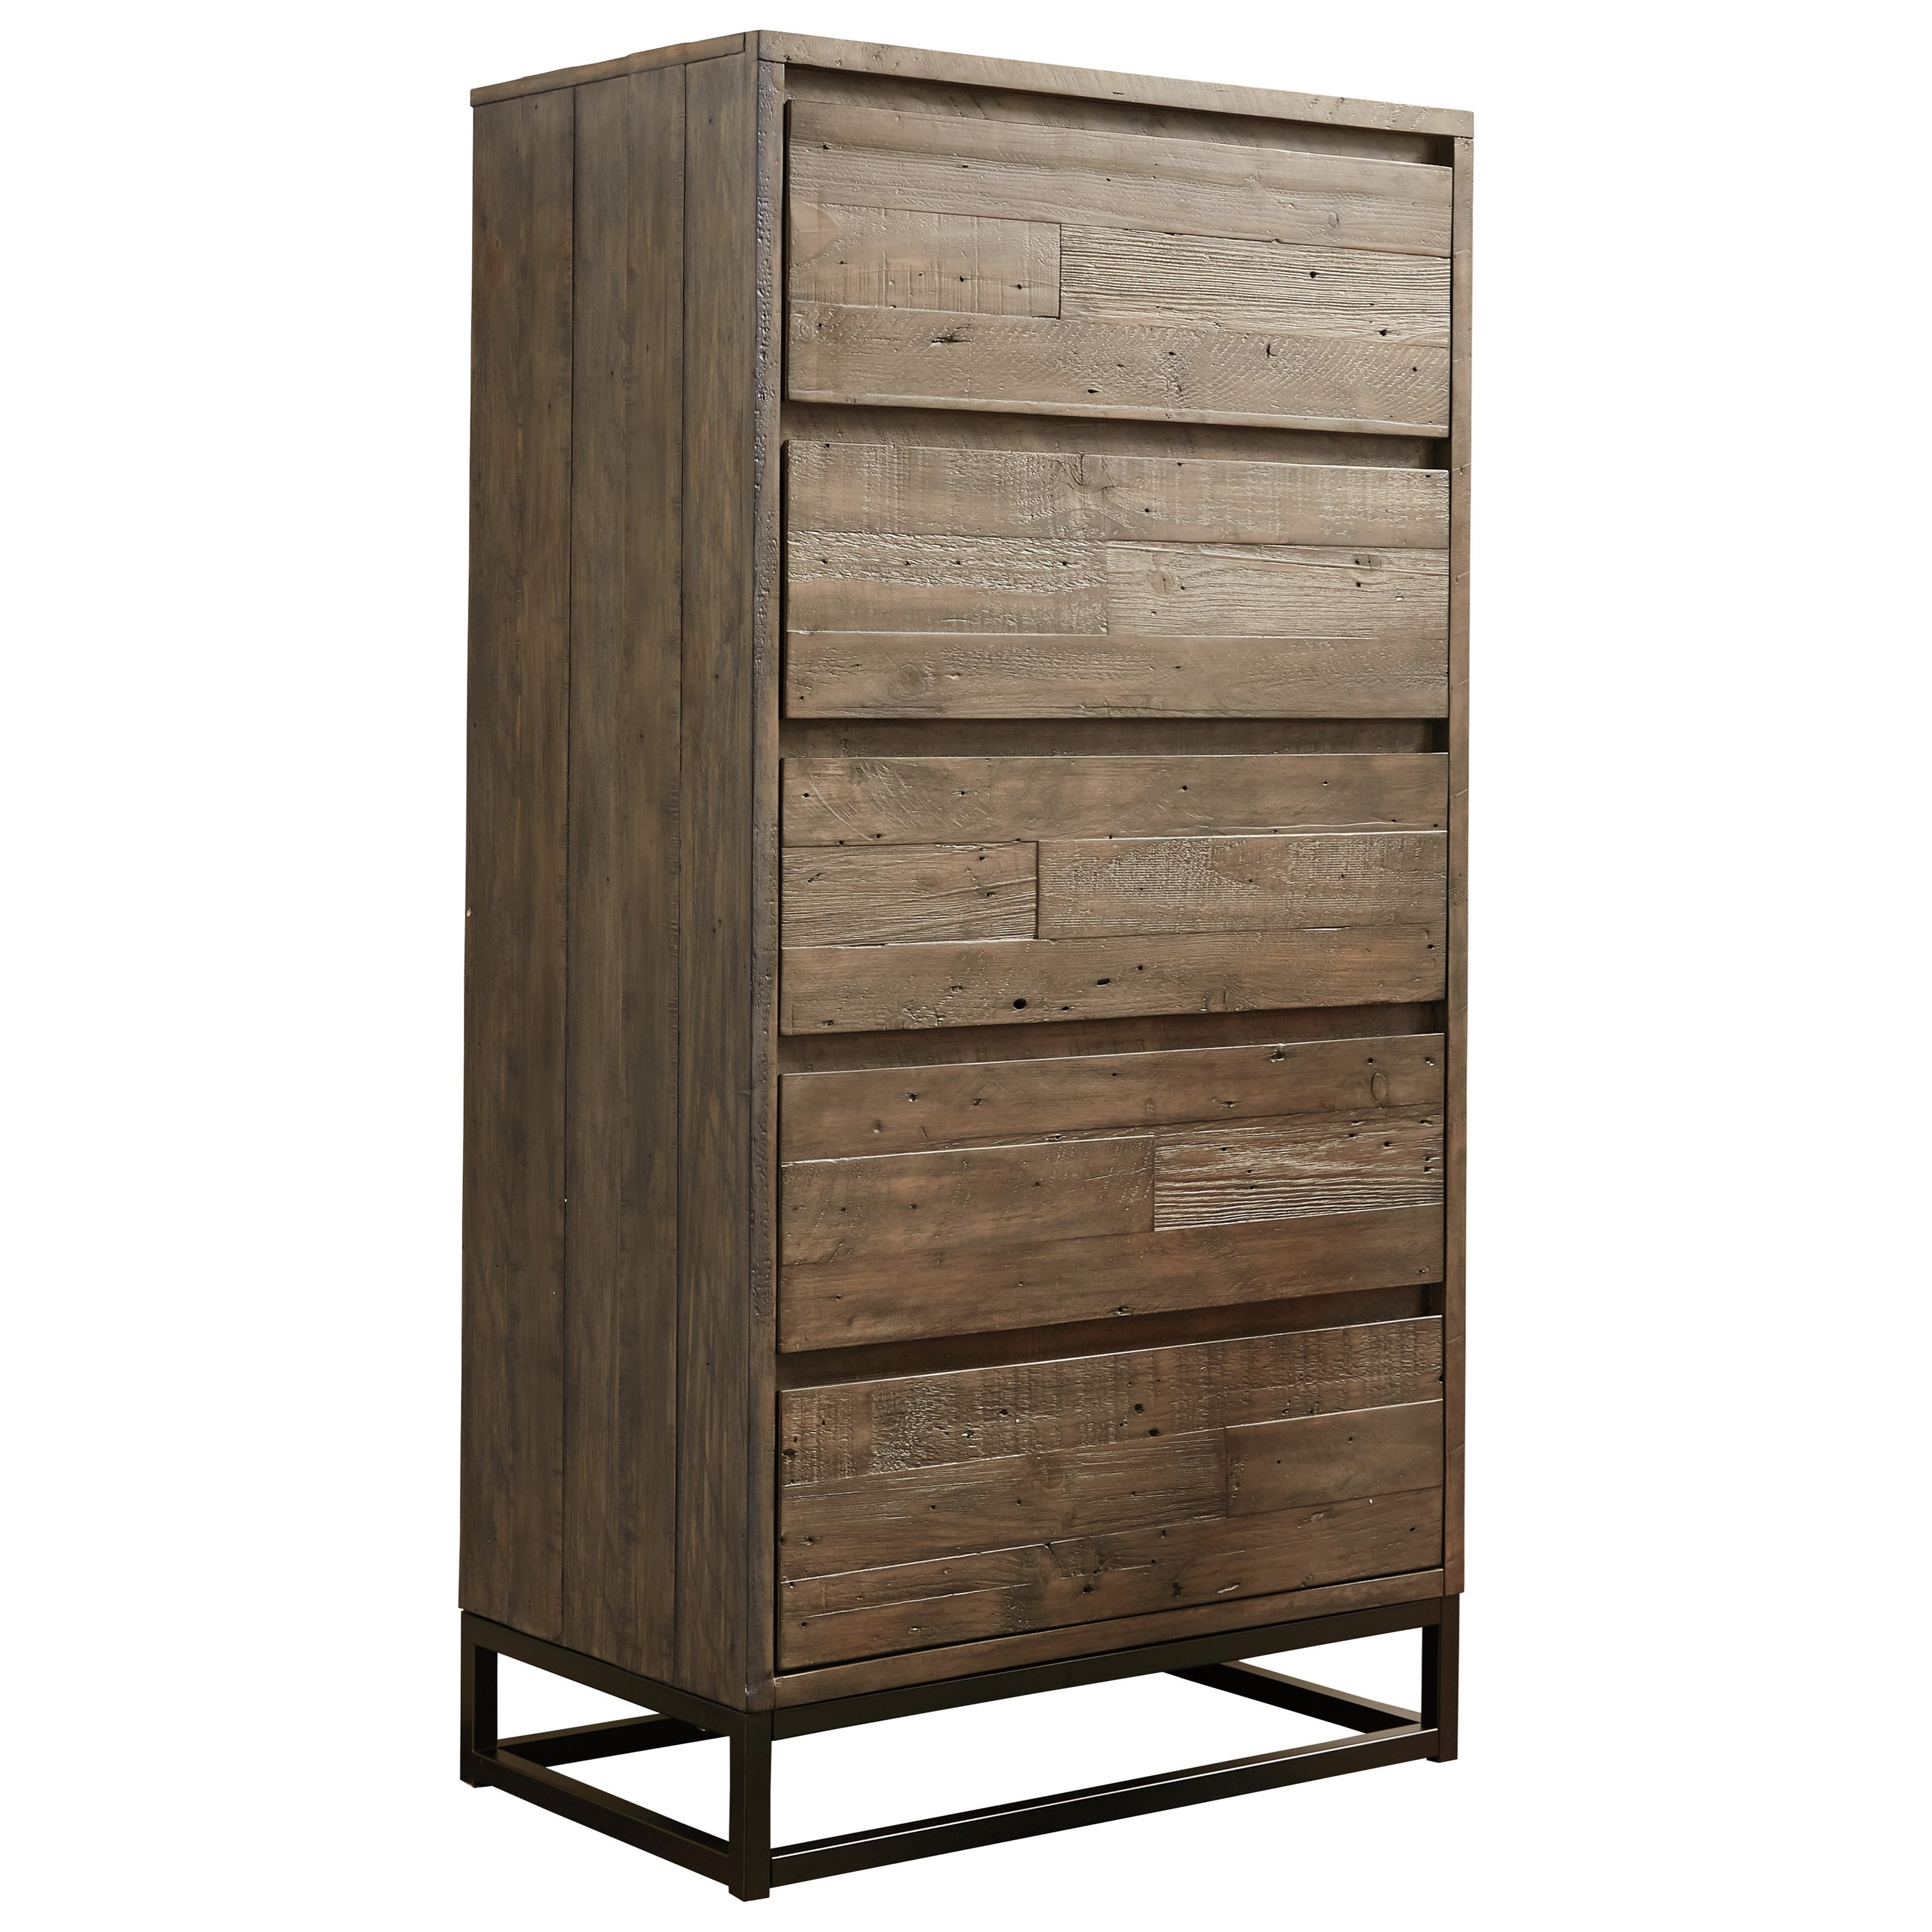 Cazentine Five Drawer Chest by Signature Design by Ashley at Lapeer Furniture & Mattress Center